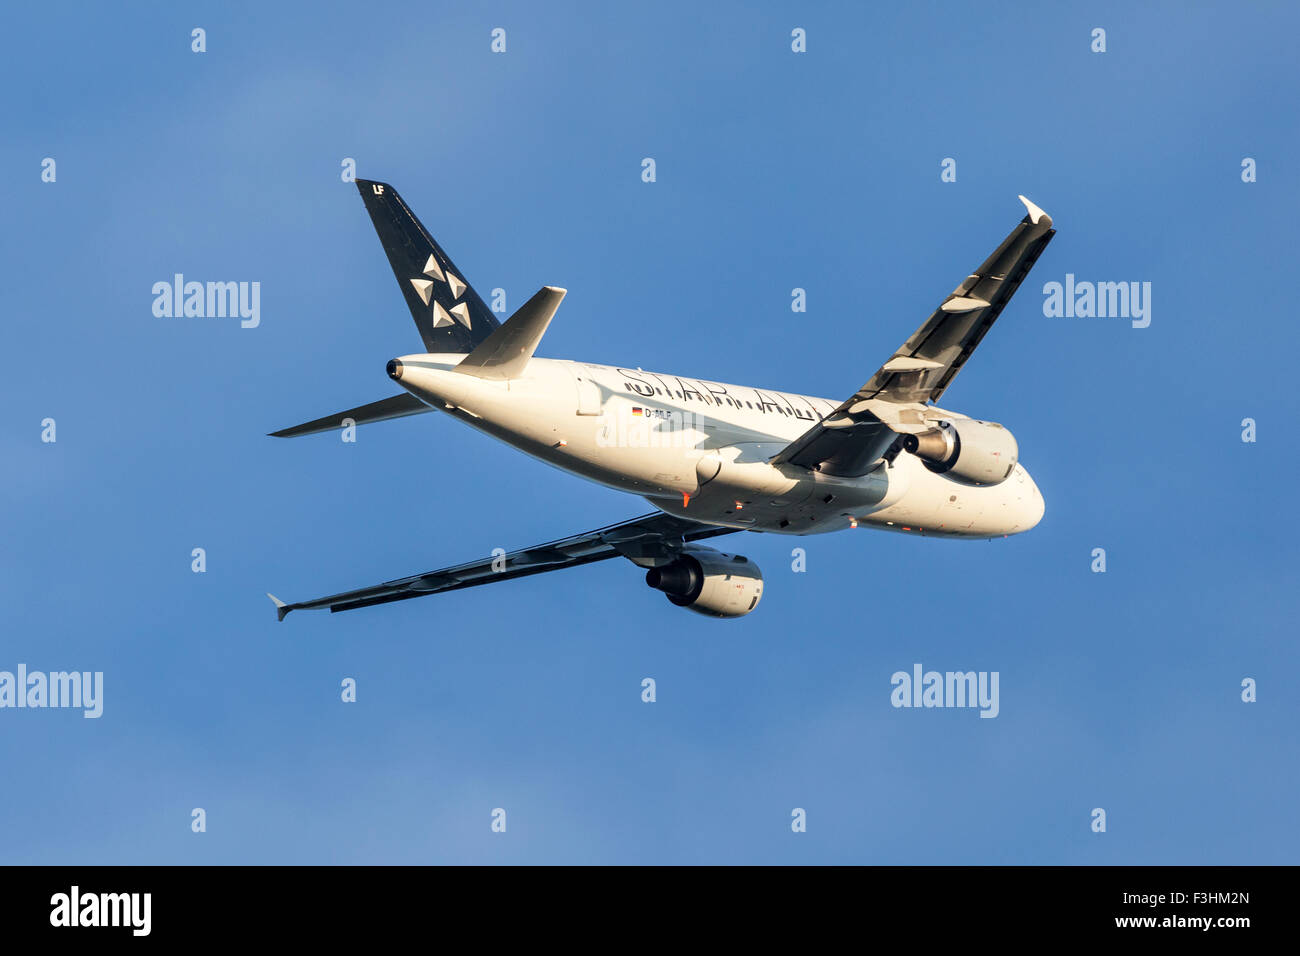 Star Alliance Airbus A319 aircraft after takeoff at the Frankfurt International Airport - Stock Image